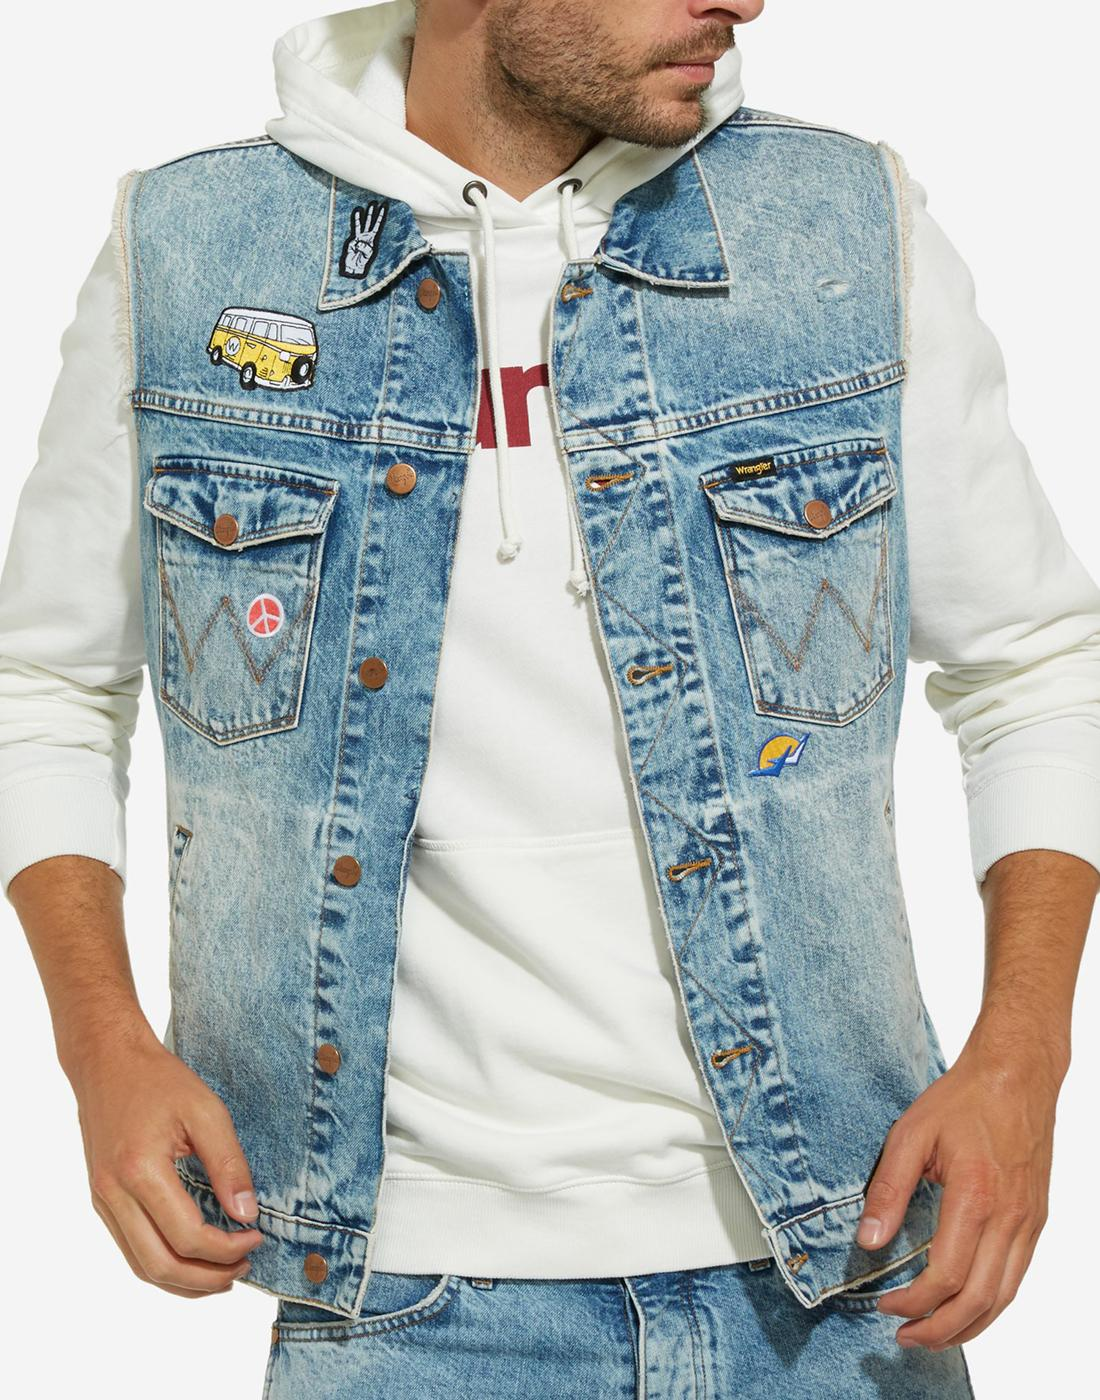 WRANGLER Mens Retro 70s Biker Patched Denim Gilet